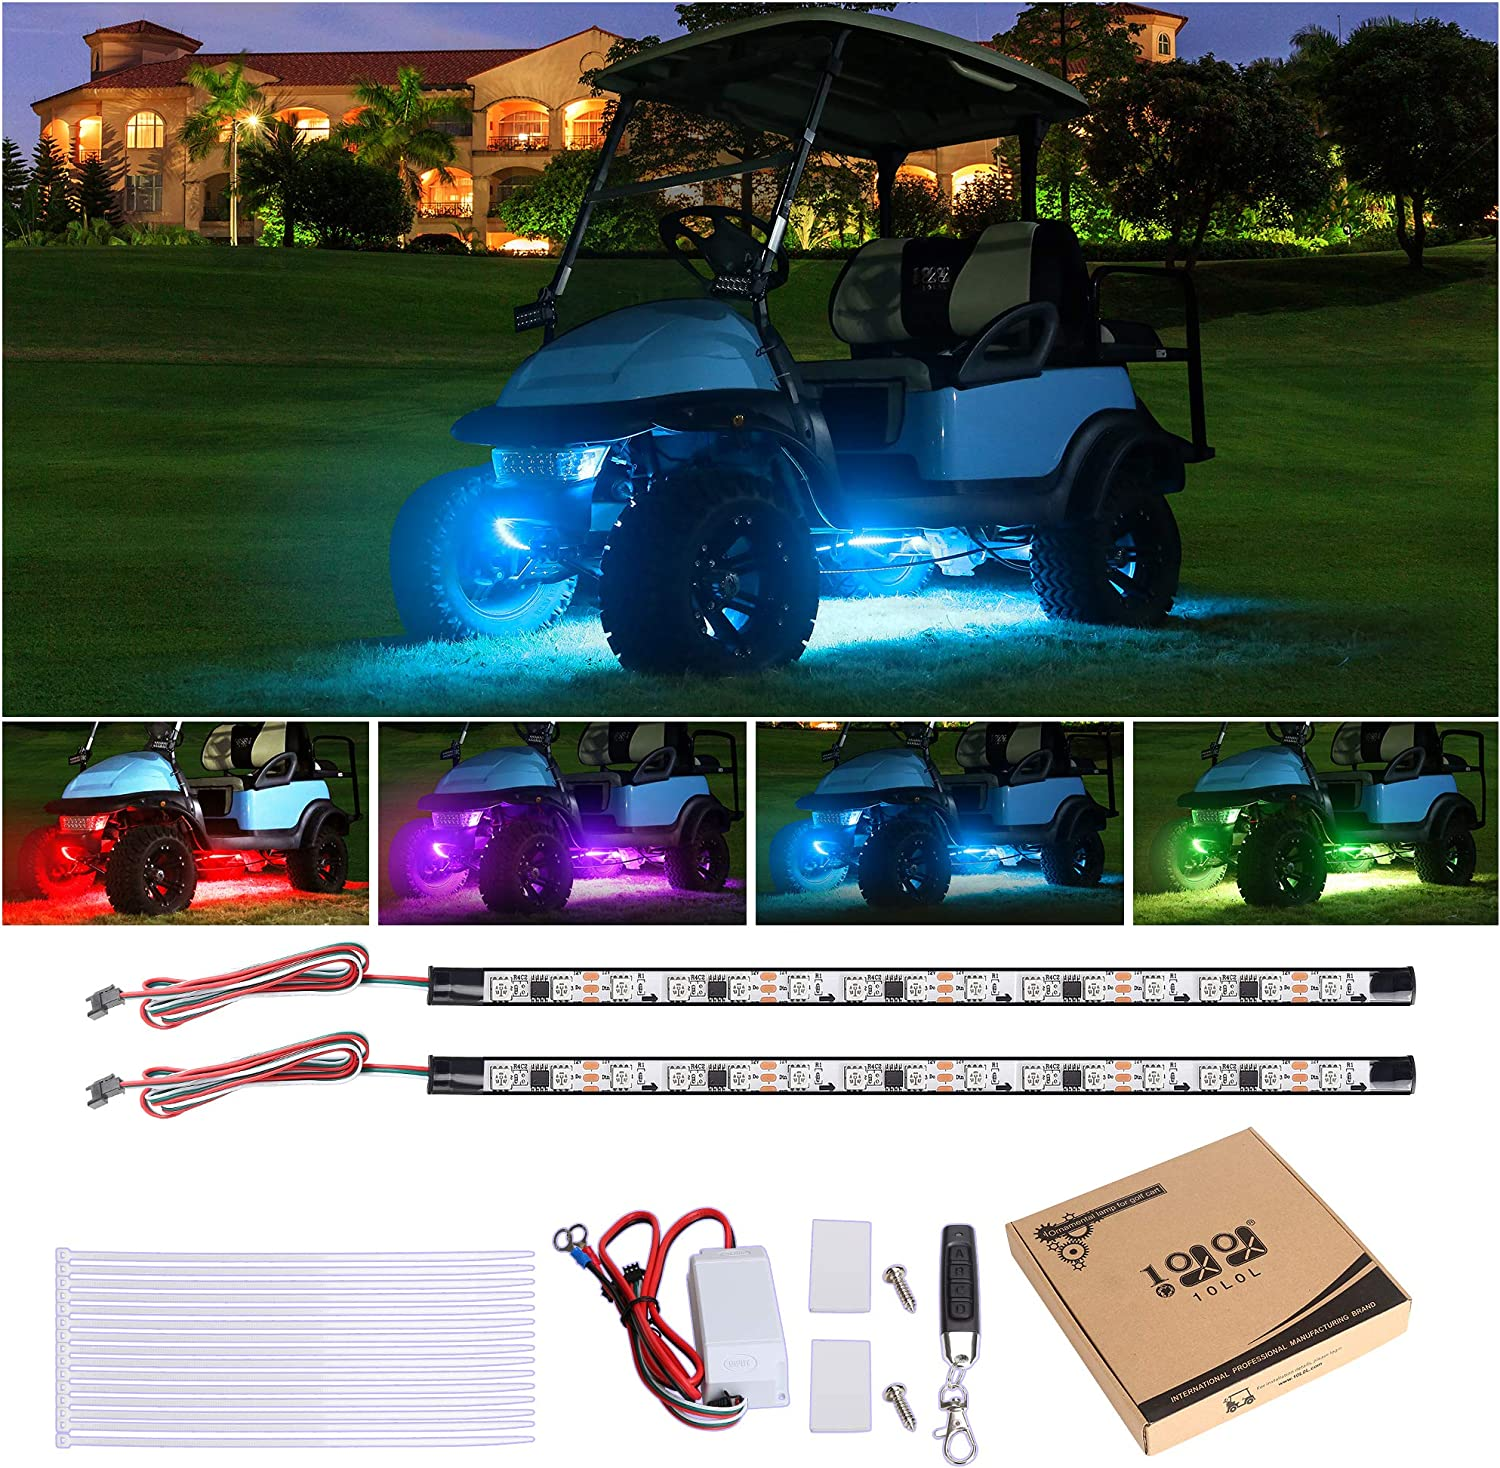 Club Car Accessories (Buying Guide 2021) - Underglow LED Light Kits